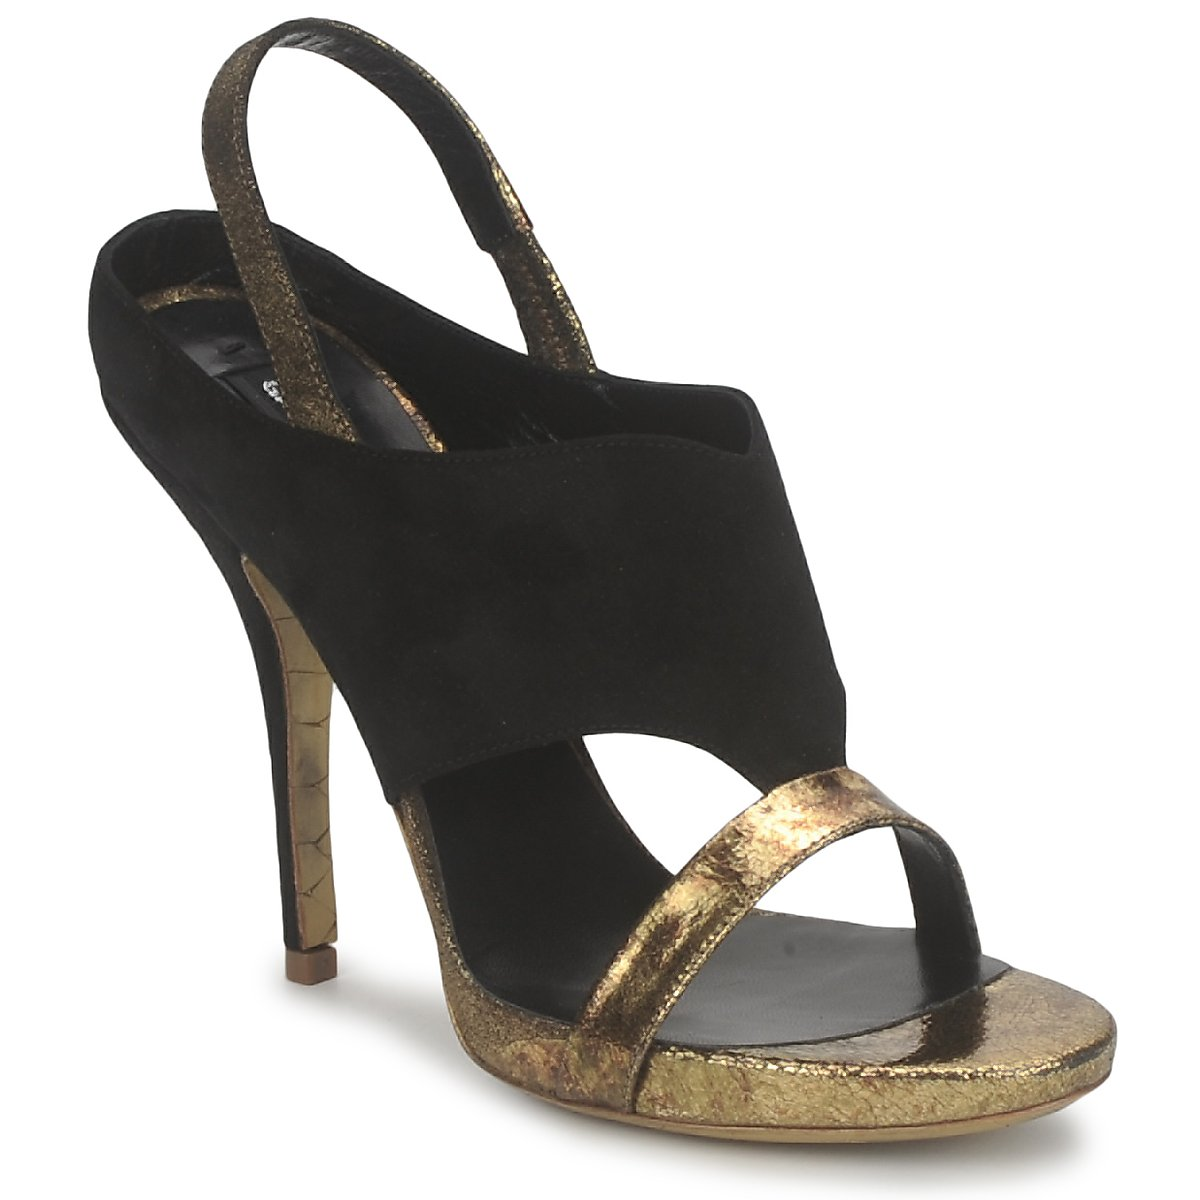 Sandals Gaspard Yurkievich T4 VAR7 Black / GOLD